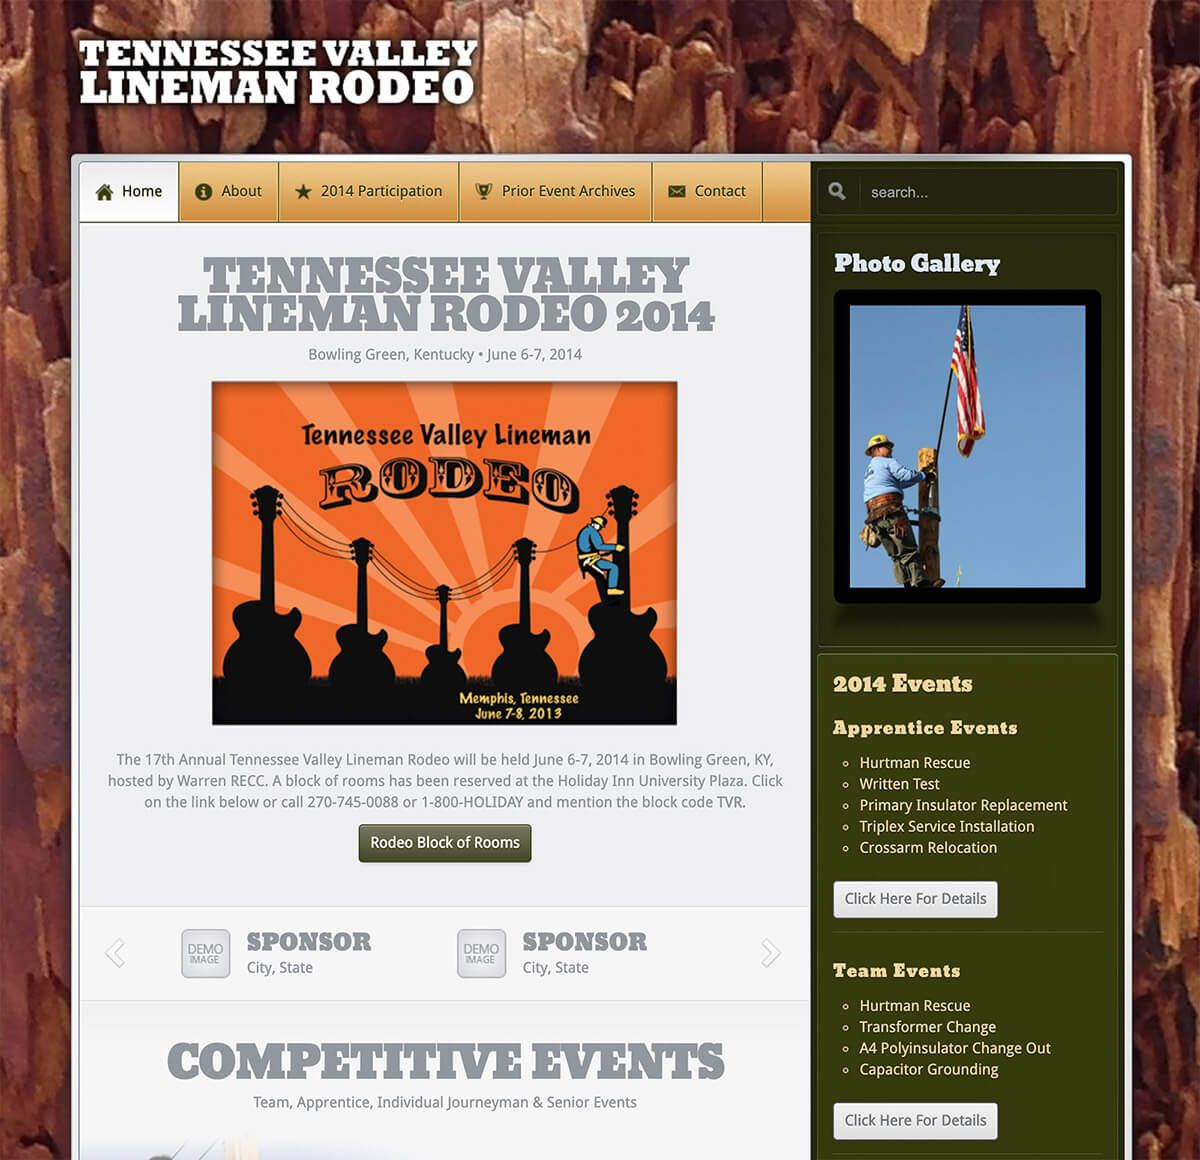 Tennessee Valley Lineman Rodeo website by EyeSite Creations